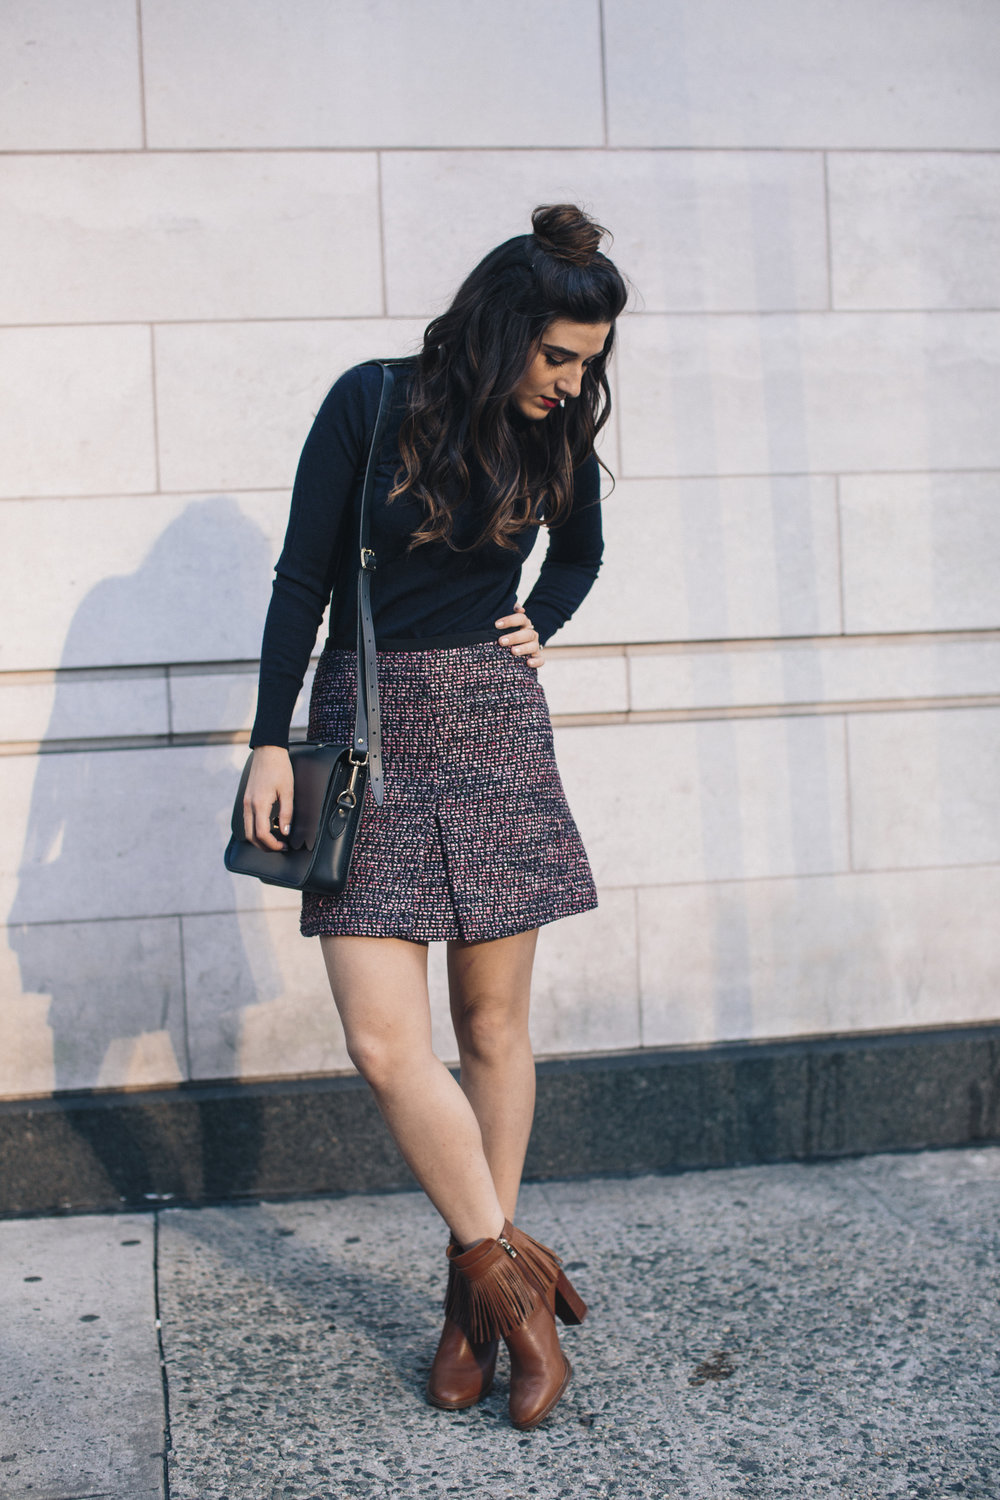 Navy Turtleneck Tweed Skirt My 10 Best Blogging Moments Louboutins & Love Fashion Blog Esther Santer NYC Street Style Blogger Outfit OOTD Trendy Cambridge Satchel Bag Topknot Hair Bun Girl Women Beauty Winter Shop Shoes Tan Fringe Ivanka Trump Booties.jpg